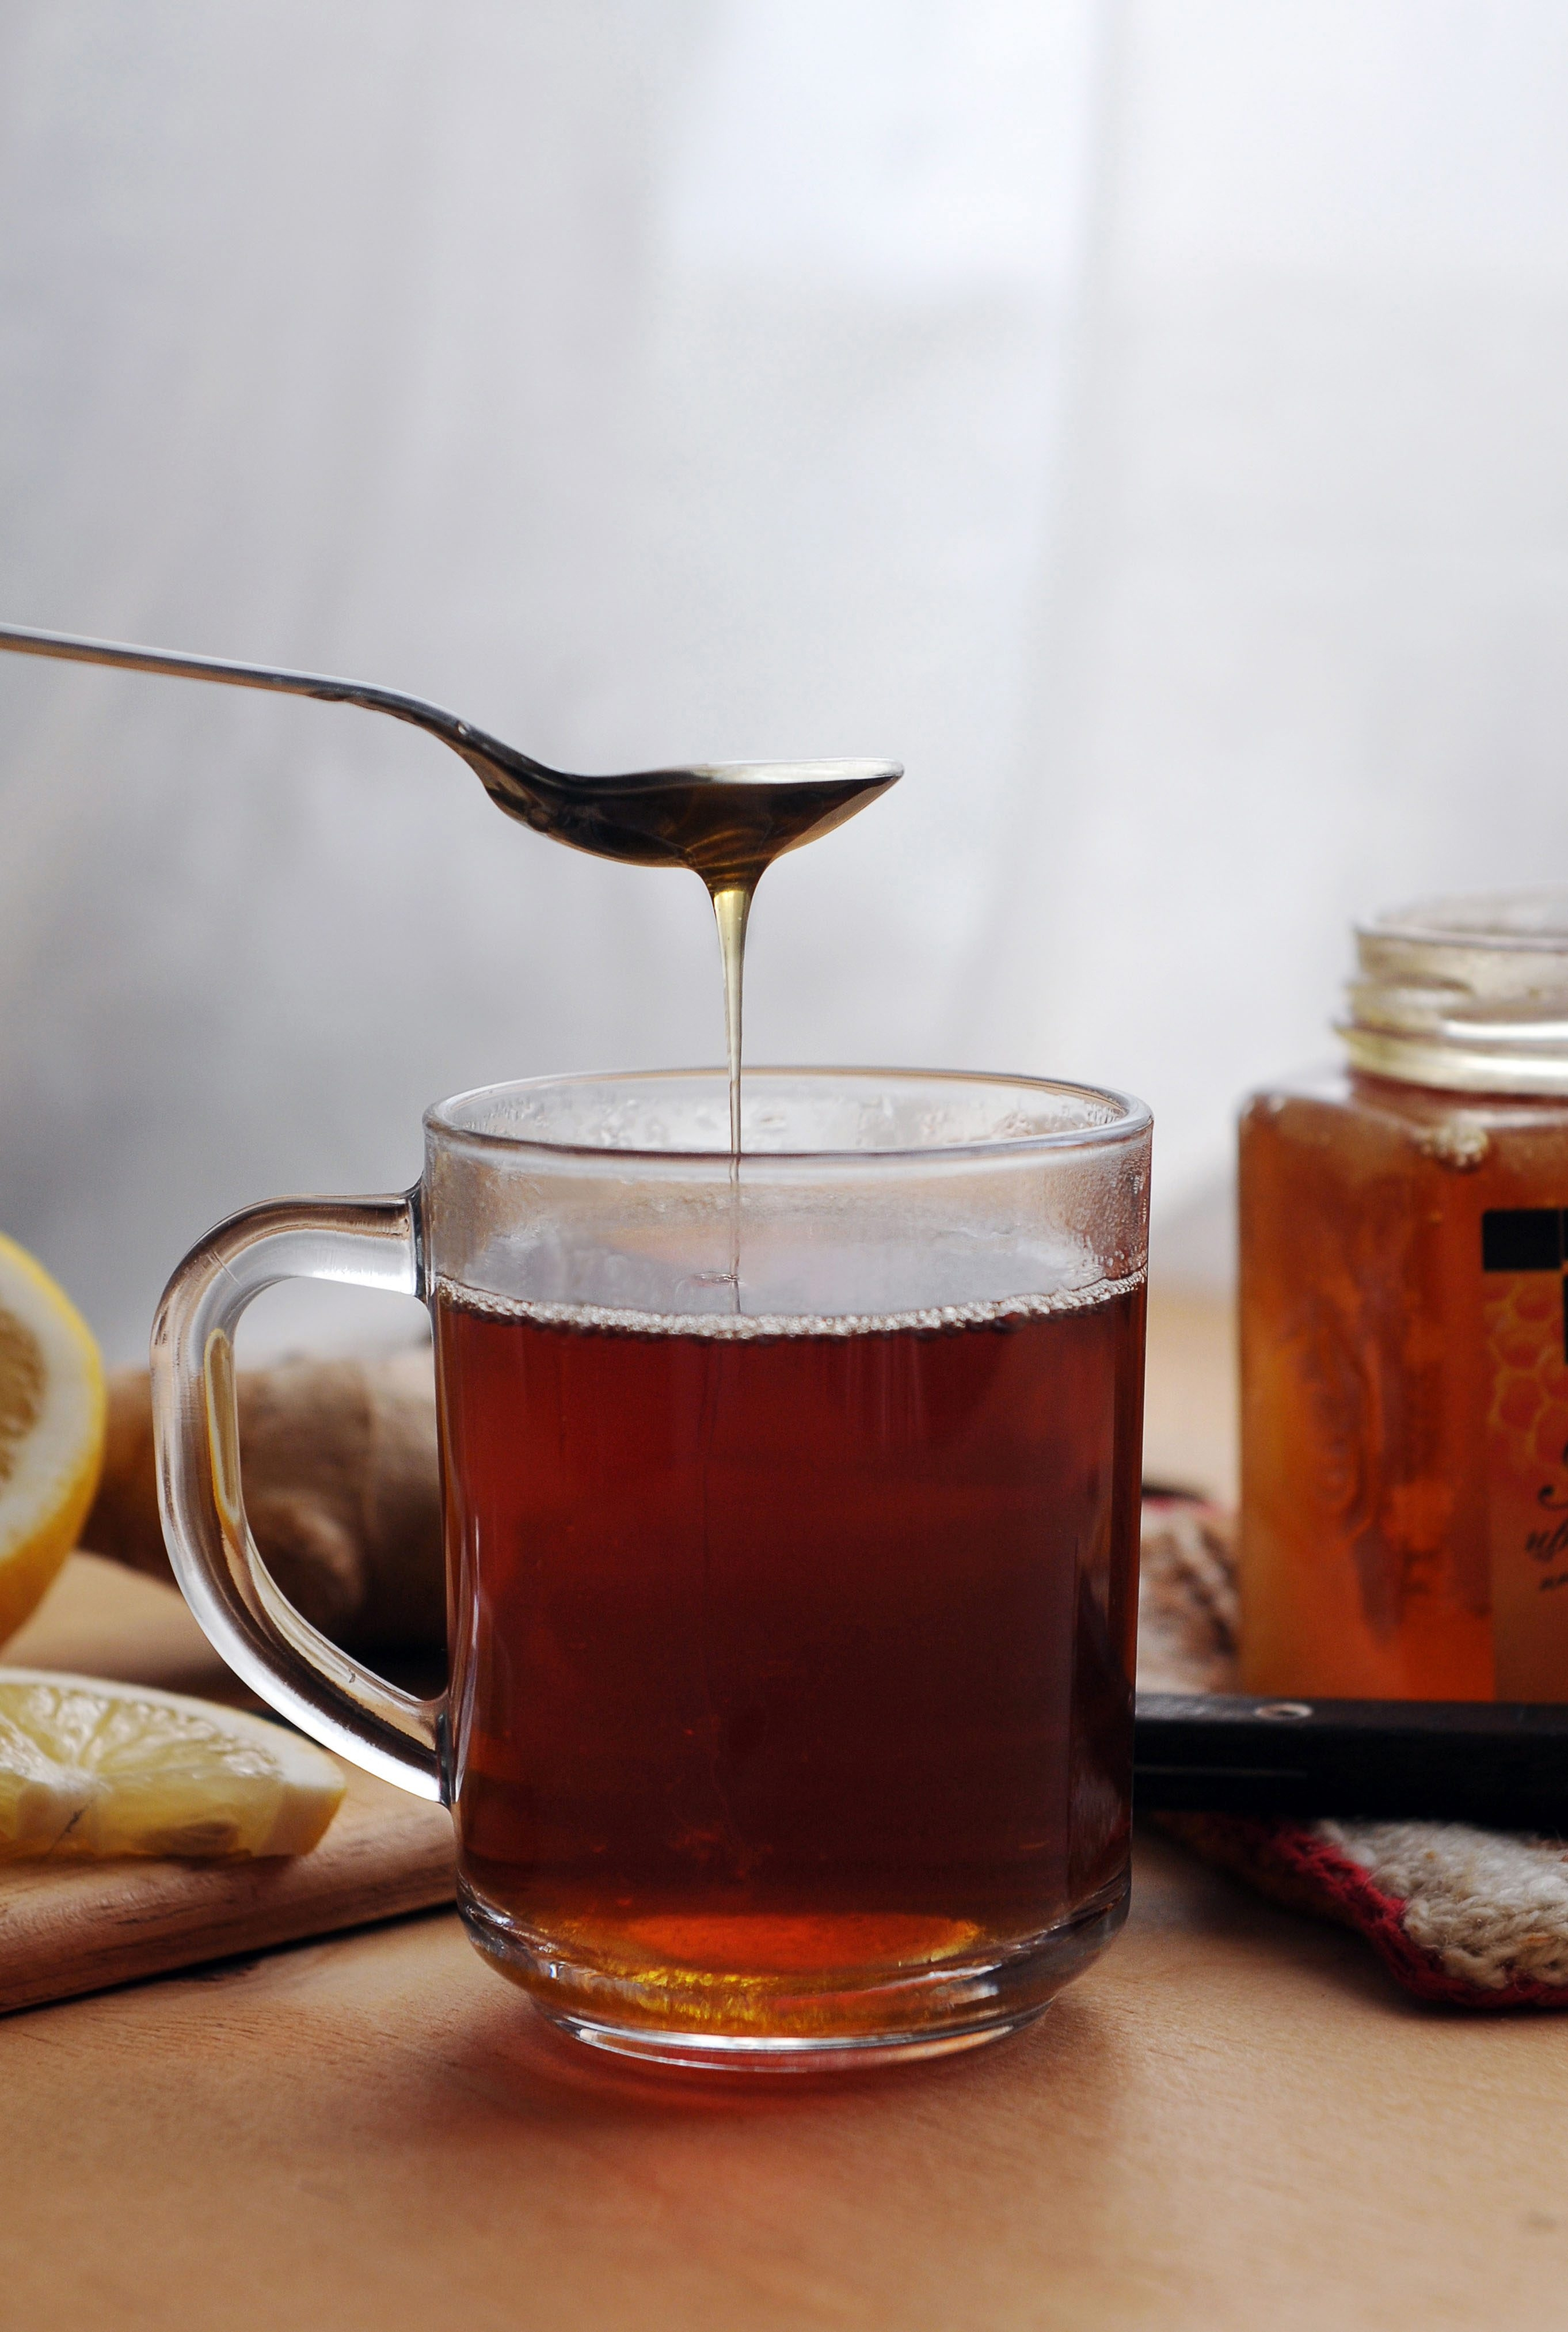 Sugar comes in many forms including honey, brown rice syrup, corn syrup and molasses.